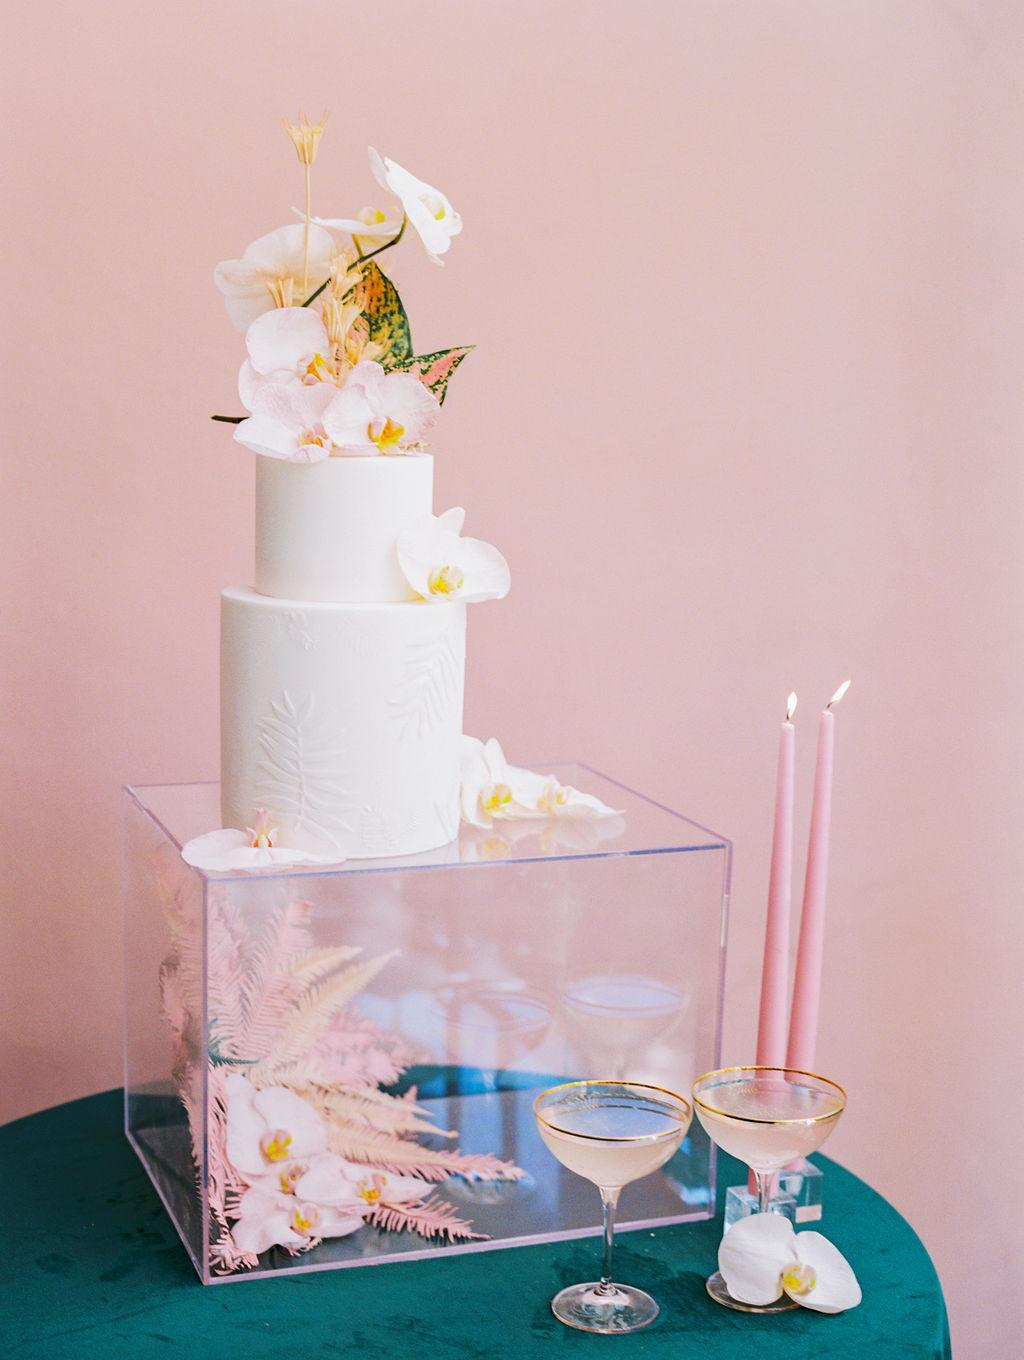 white wedding cake with white orchids and tropical leaves https://shopstyle.it/l/bhmJb